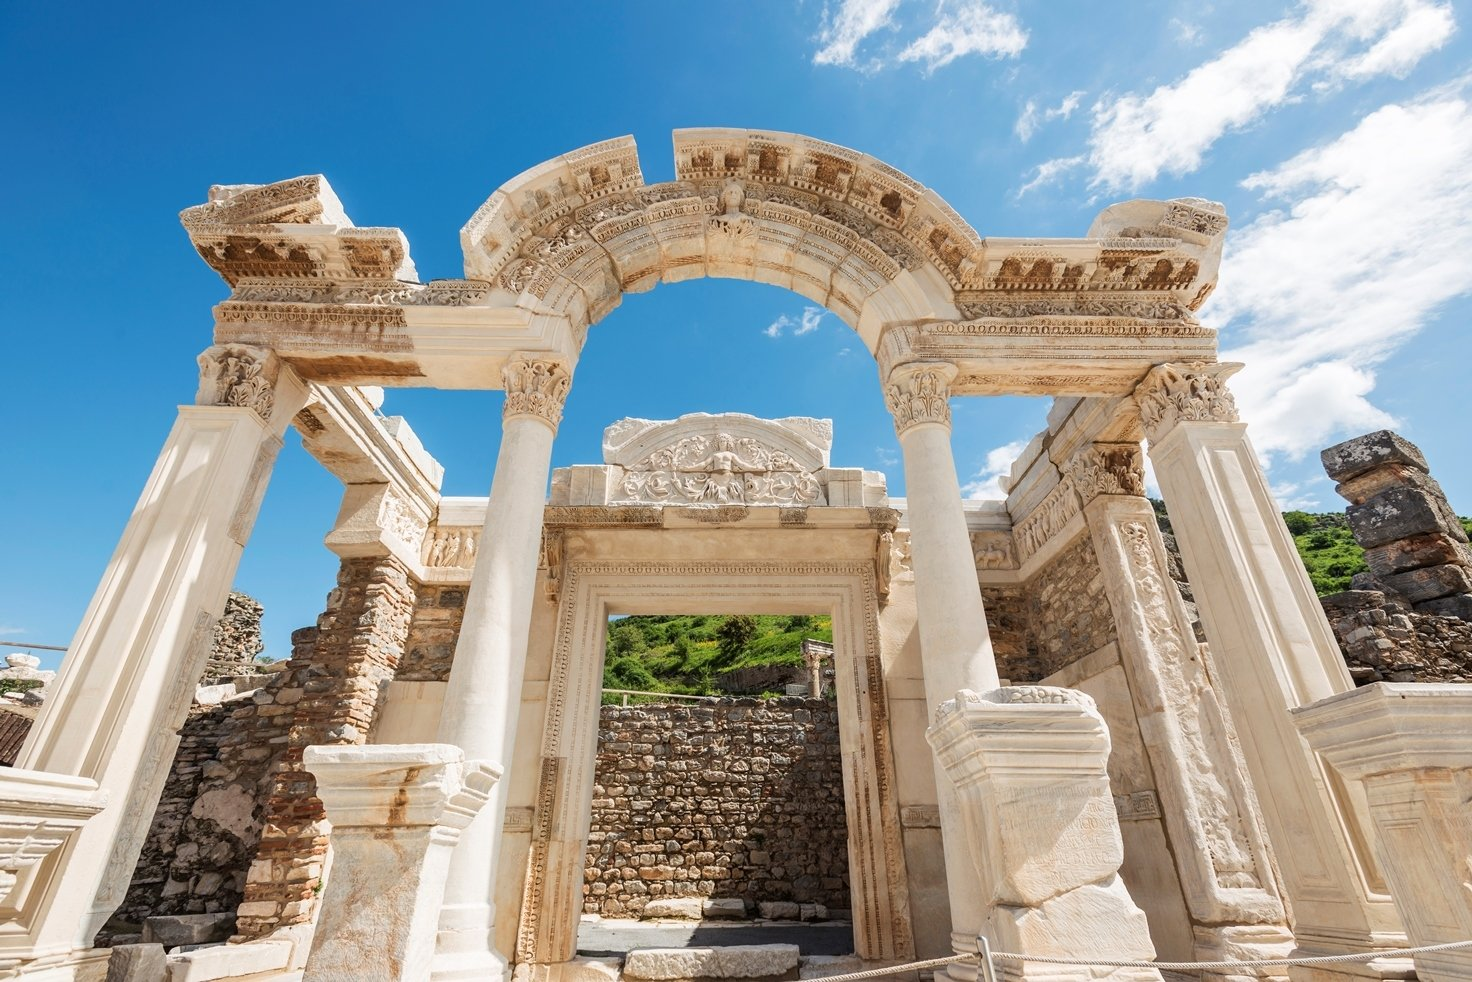 The ancient city of Ephesus has some of the most outstanding architectural examples of the Hellenistic and Roman periods.